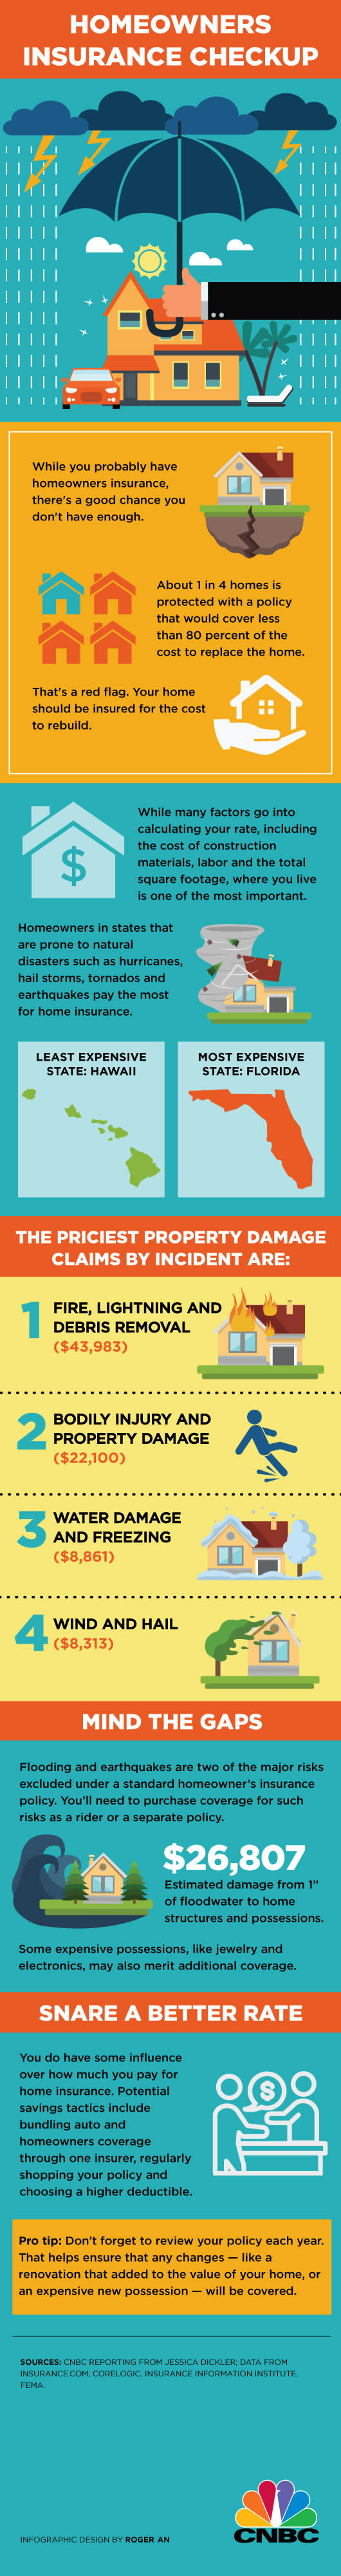 Homeowners insurance INFOGRAPHIC